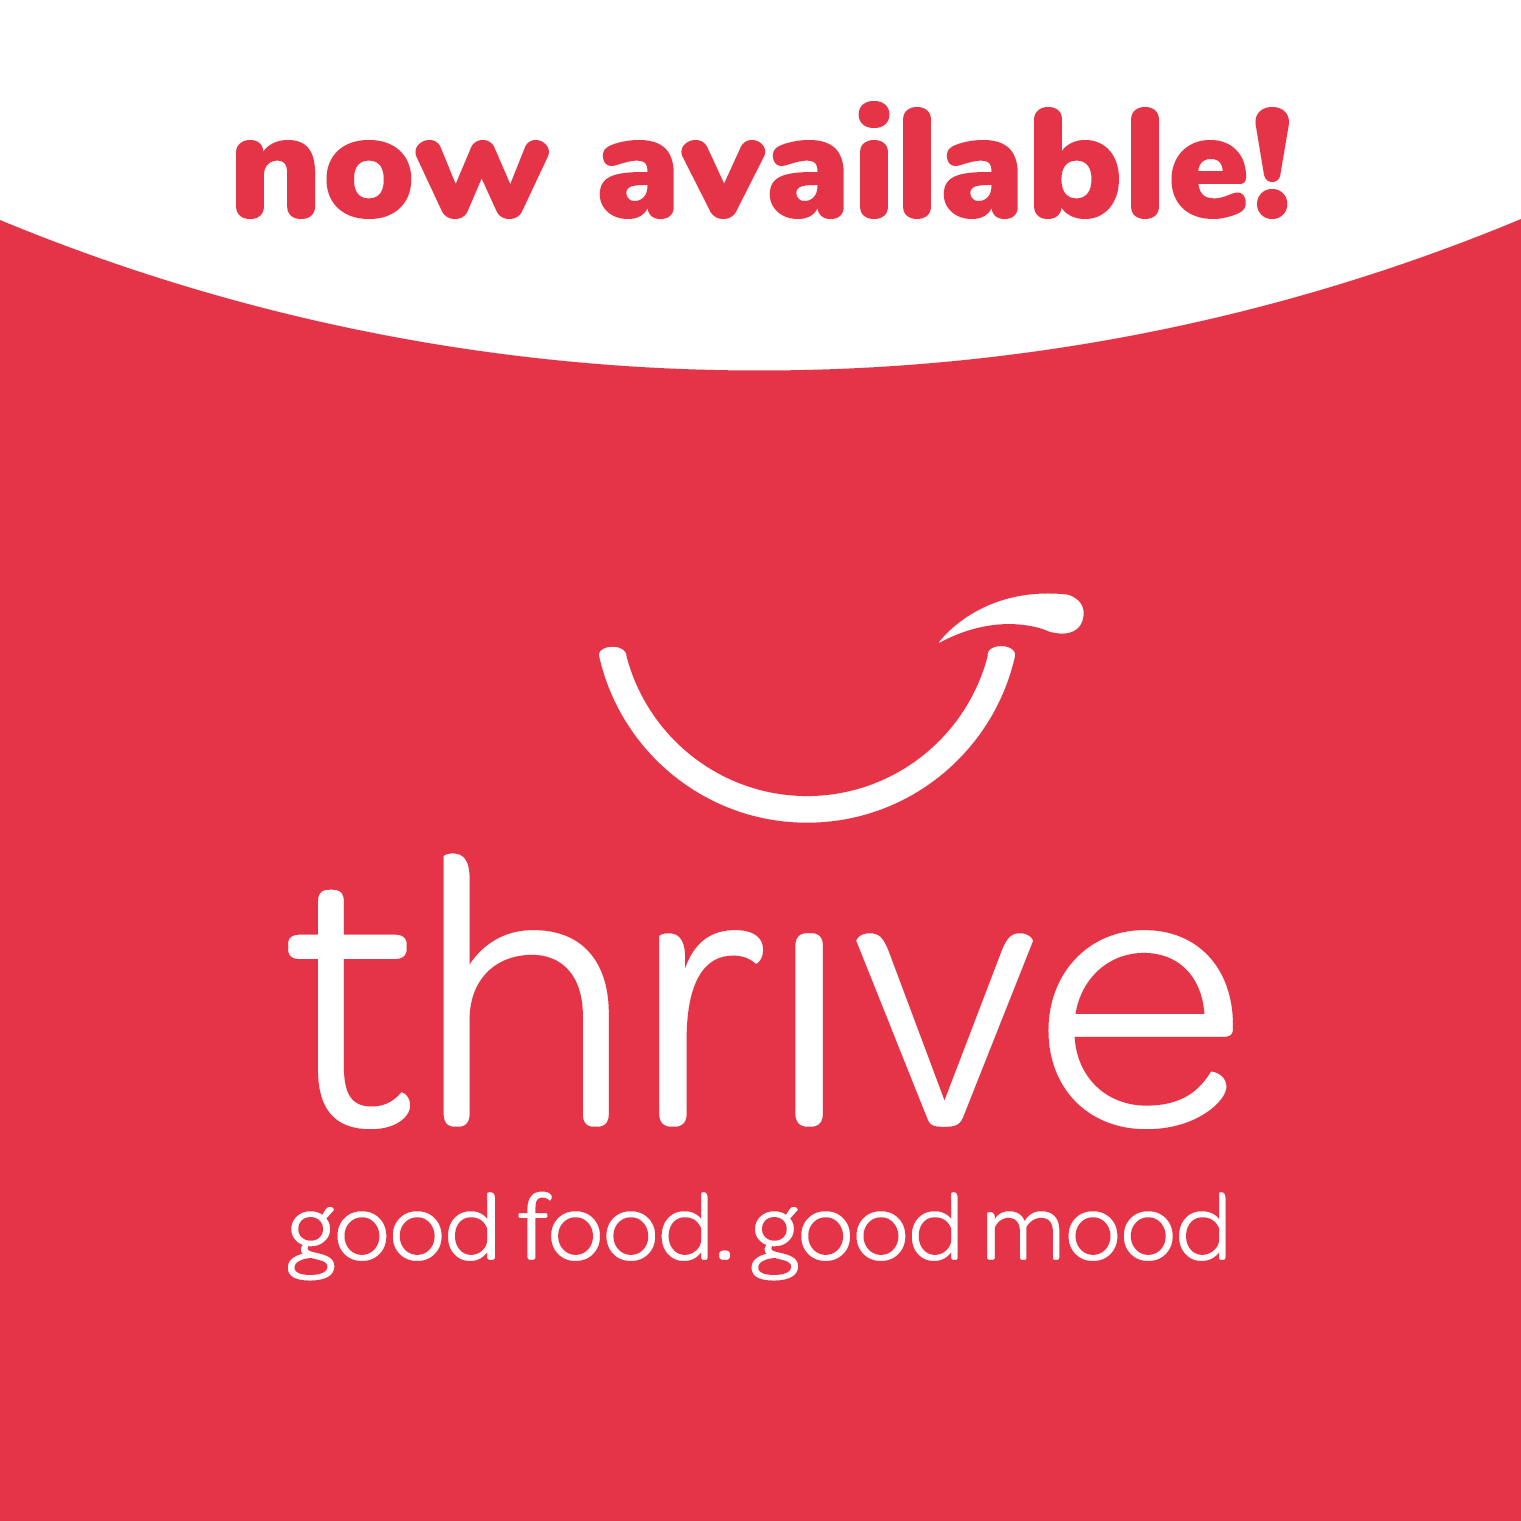 Thrive- it's here